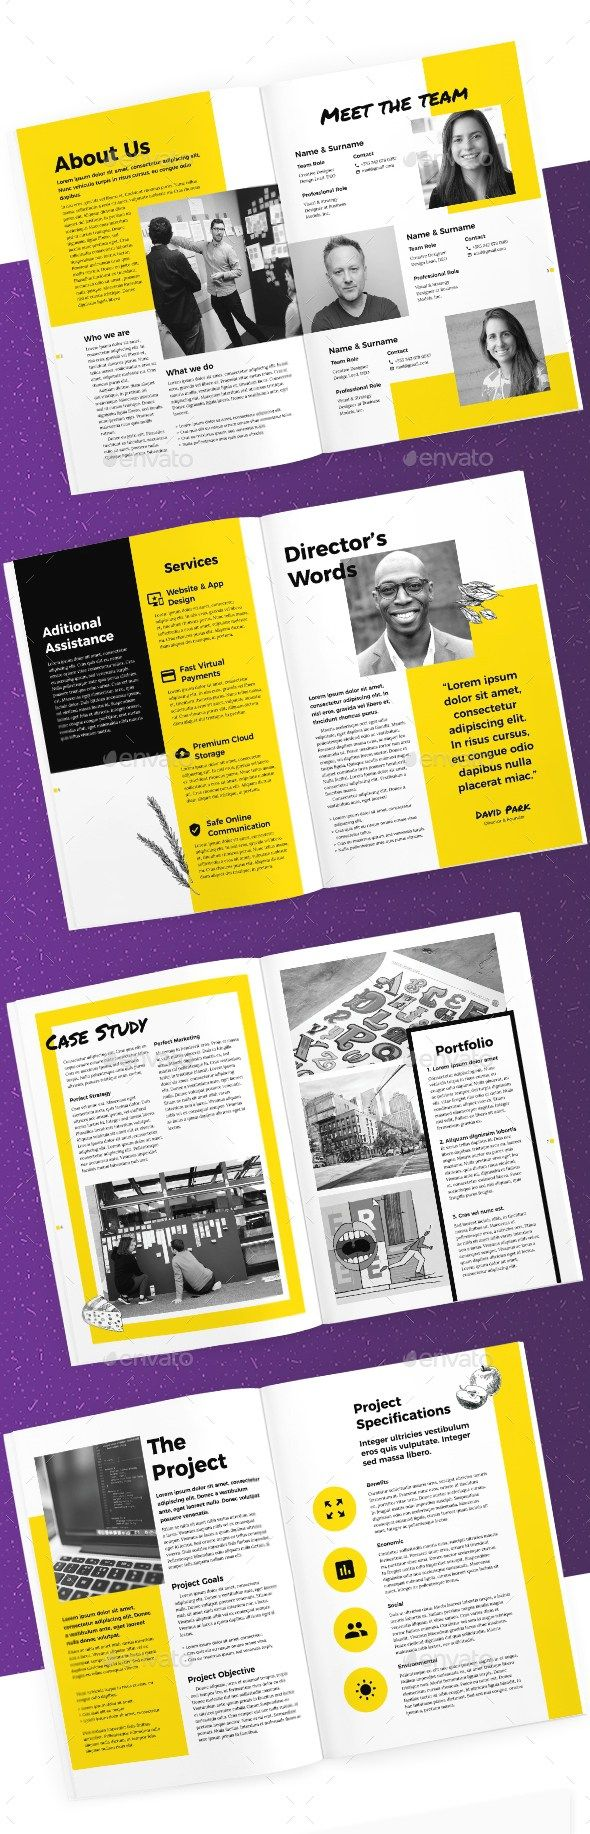 37 best business proposal images on pinterest proposals adobe 18 pages creative business proposal template indesign proposal brochure template cheaphphosting Gallery